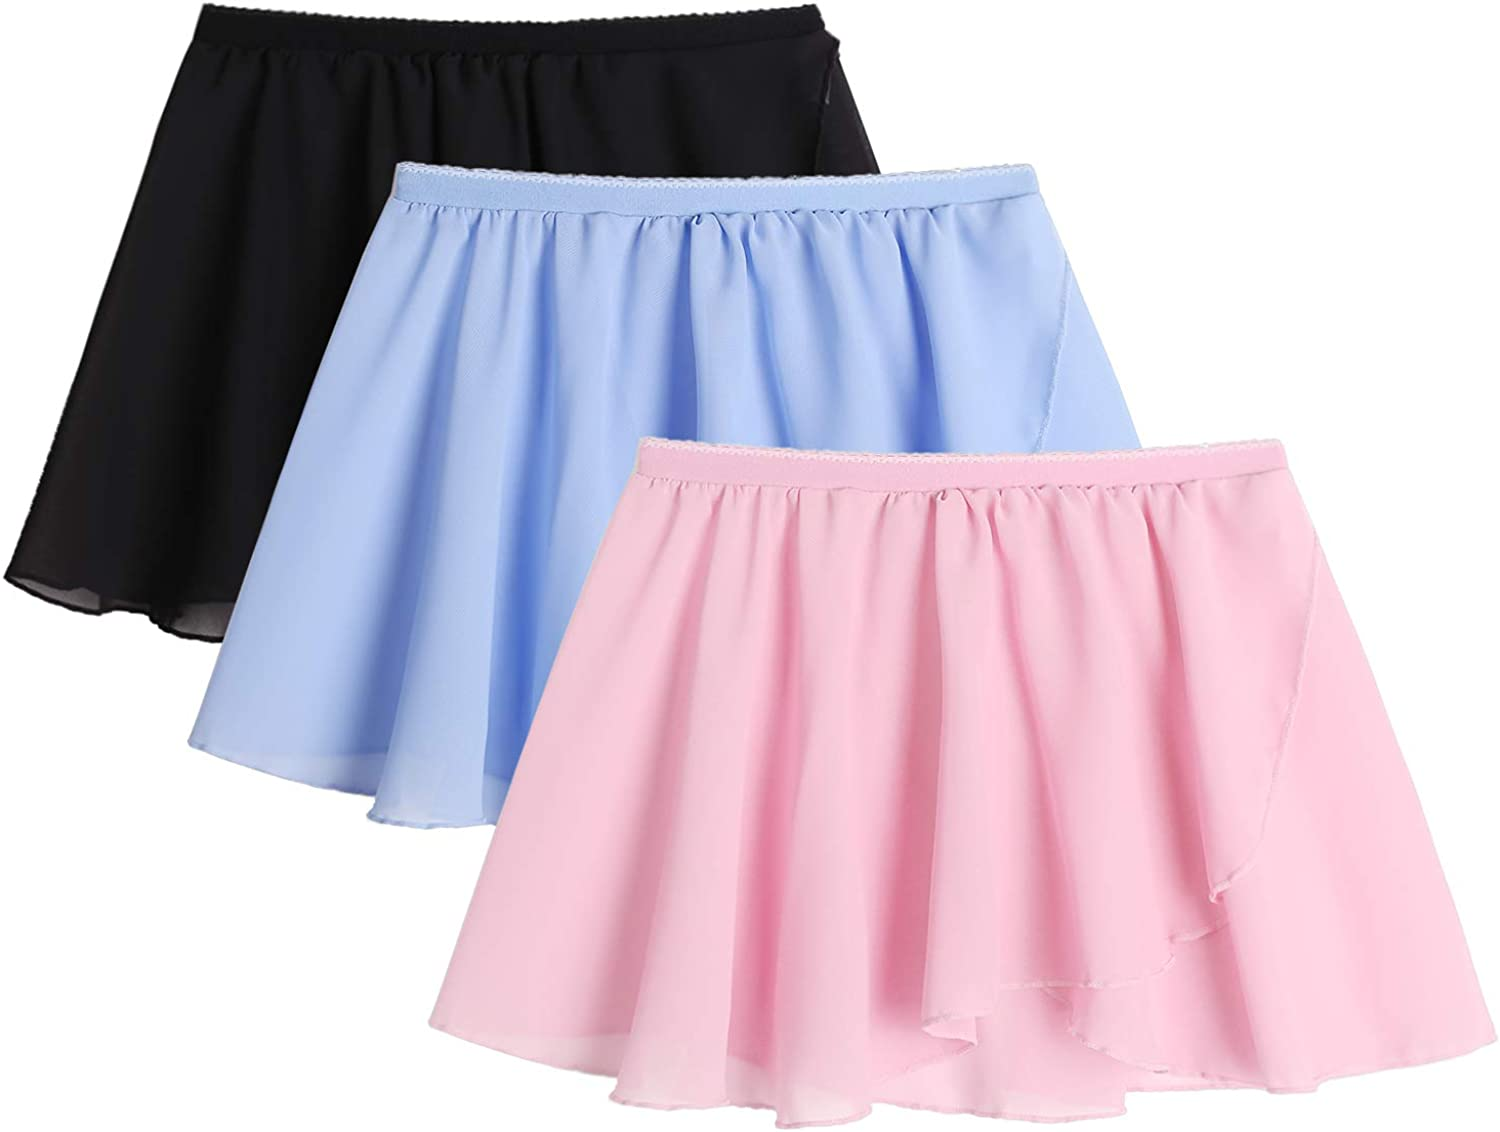 Arshiner Girls Ballet Skirts Dance Wrap Chiffon Large special price !! 3 Max 71% OFF Pack